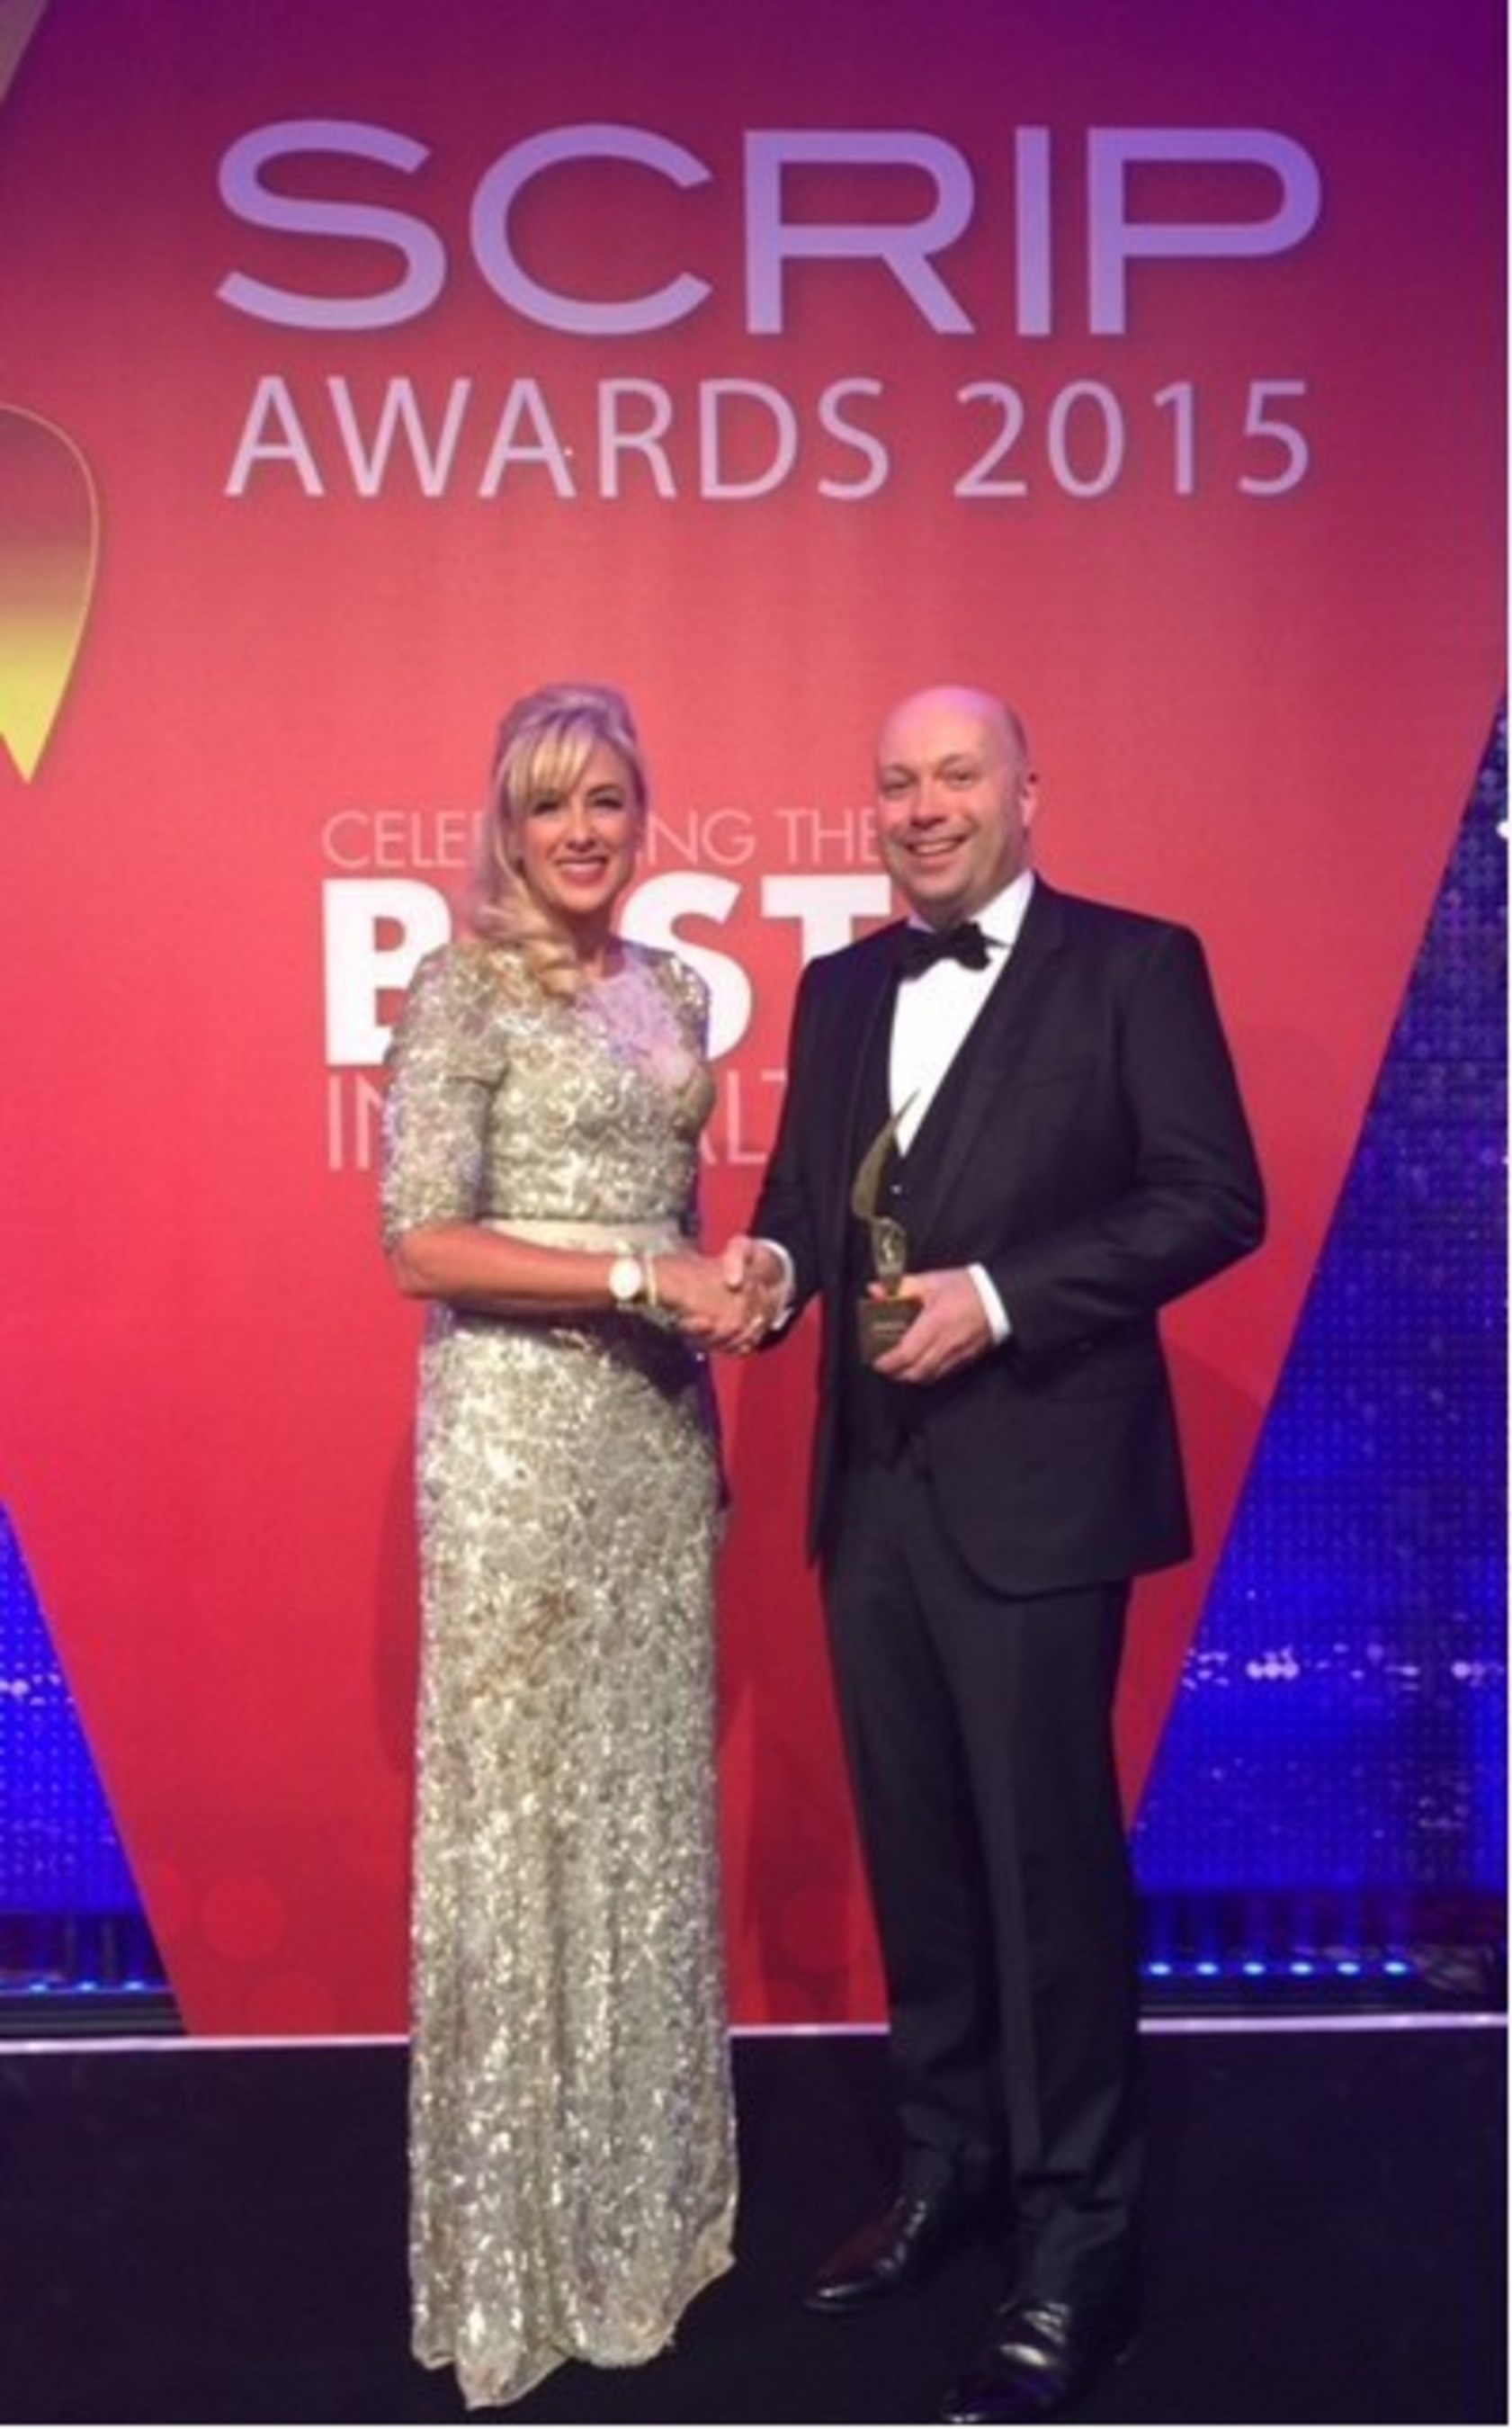 HUYA CEO and Executive Chairman, Dr. Mireille Gillings, presents the 'Best New Drug' award to Novartis at the 11th Annual SCRIP Awards held December 2, 2015 in London.